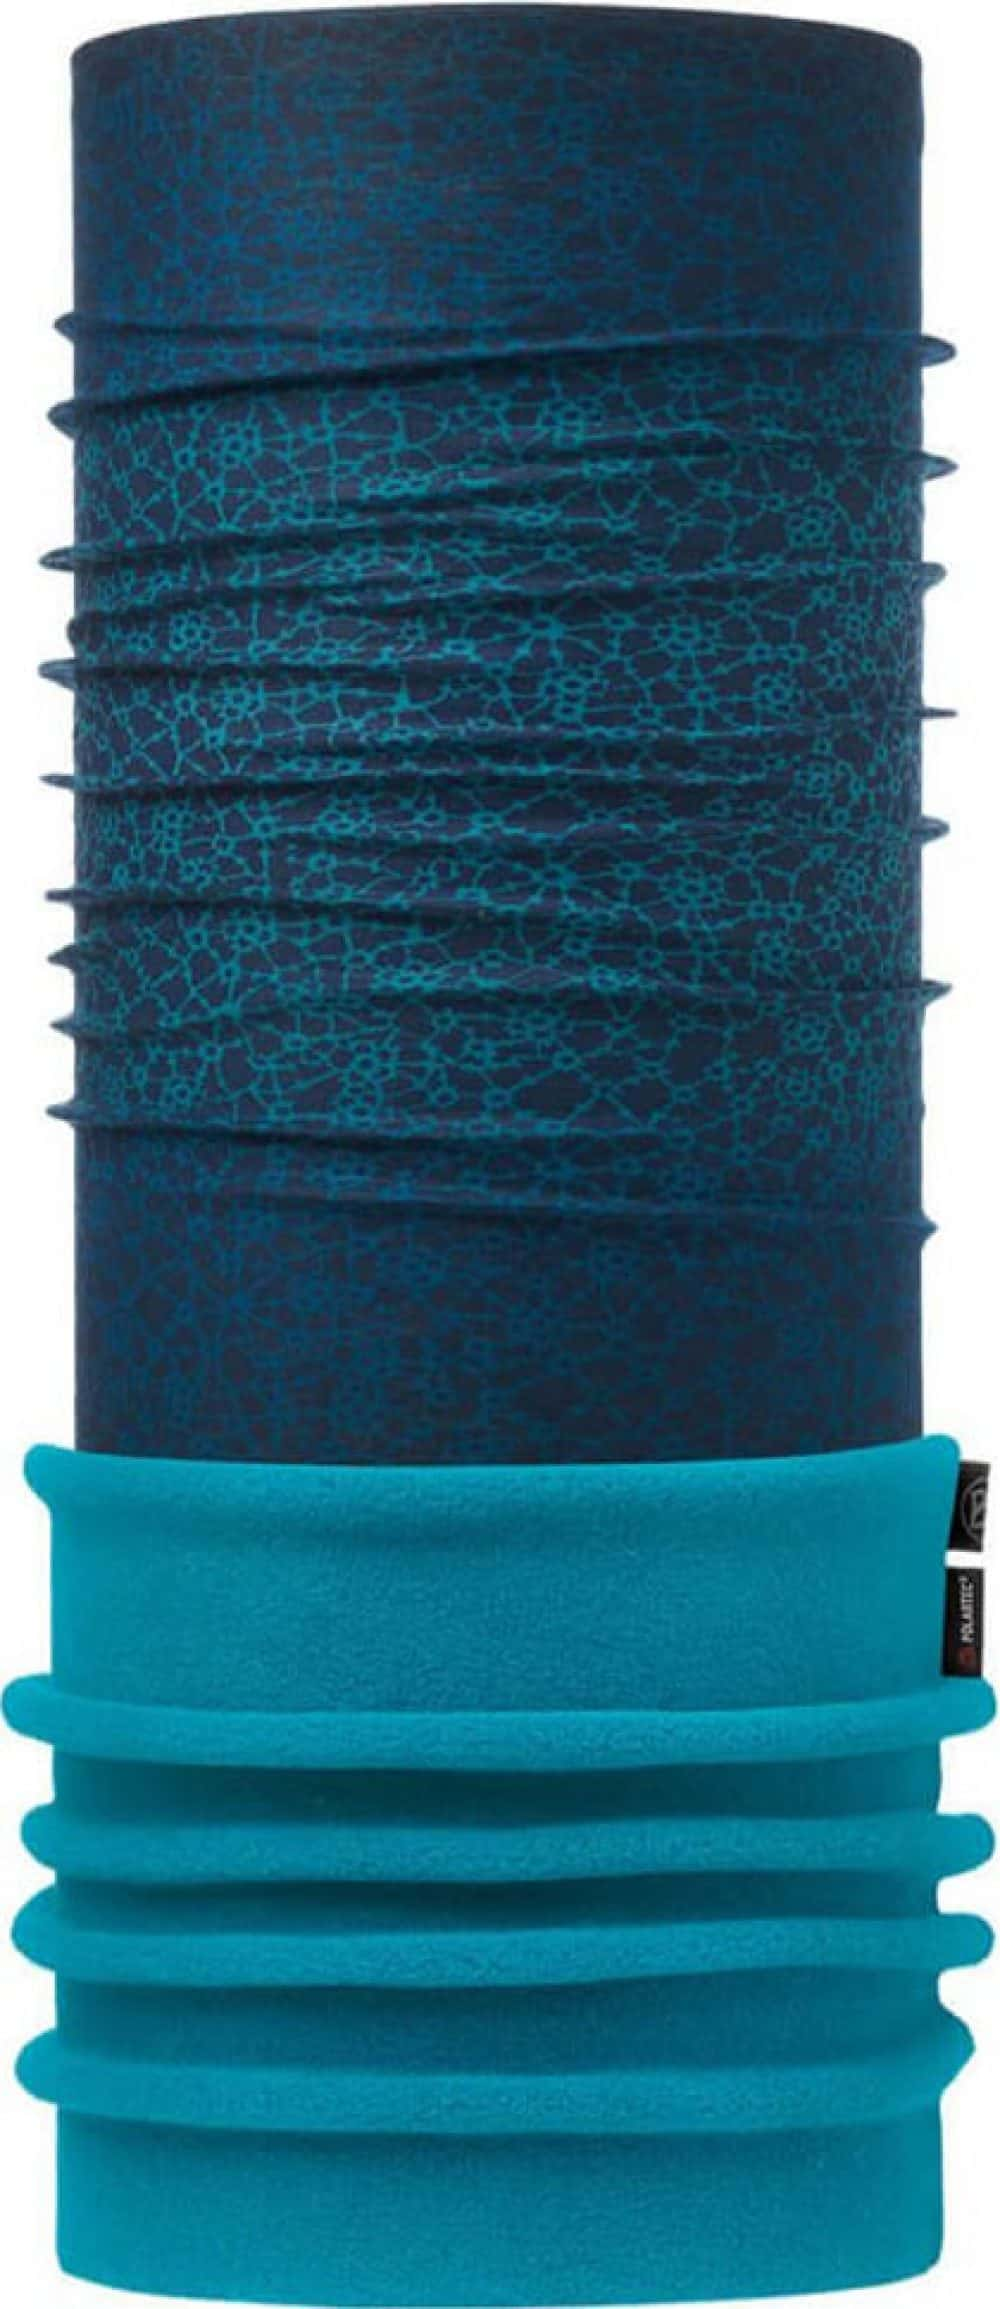 "Studio Photo of the Polar Buff® Design ""Ivana Blue / Capri"". Source: buff.eu"